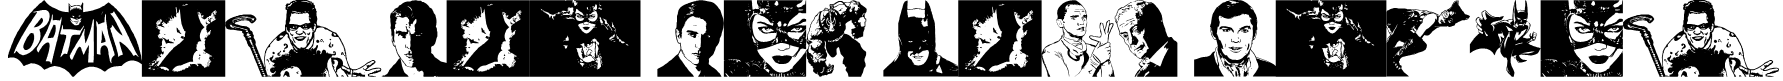 Batman The Dark Knight Font